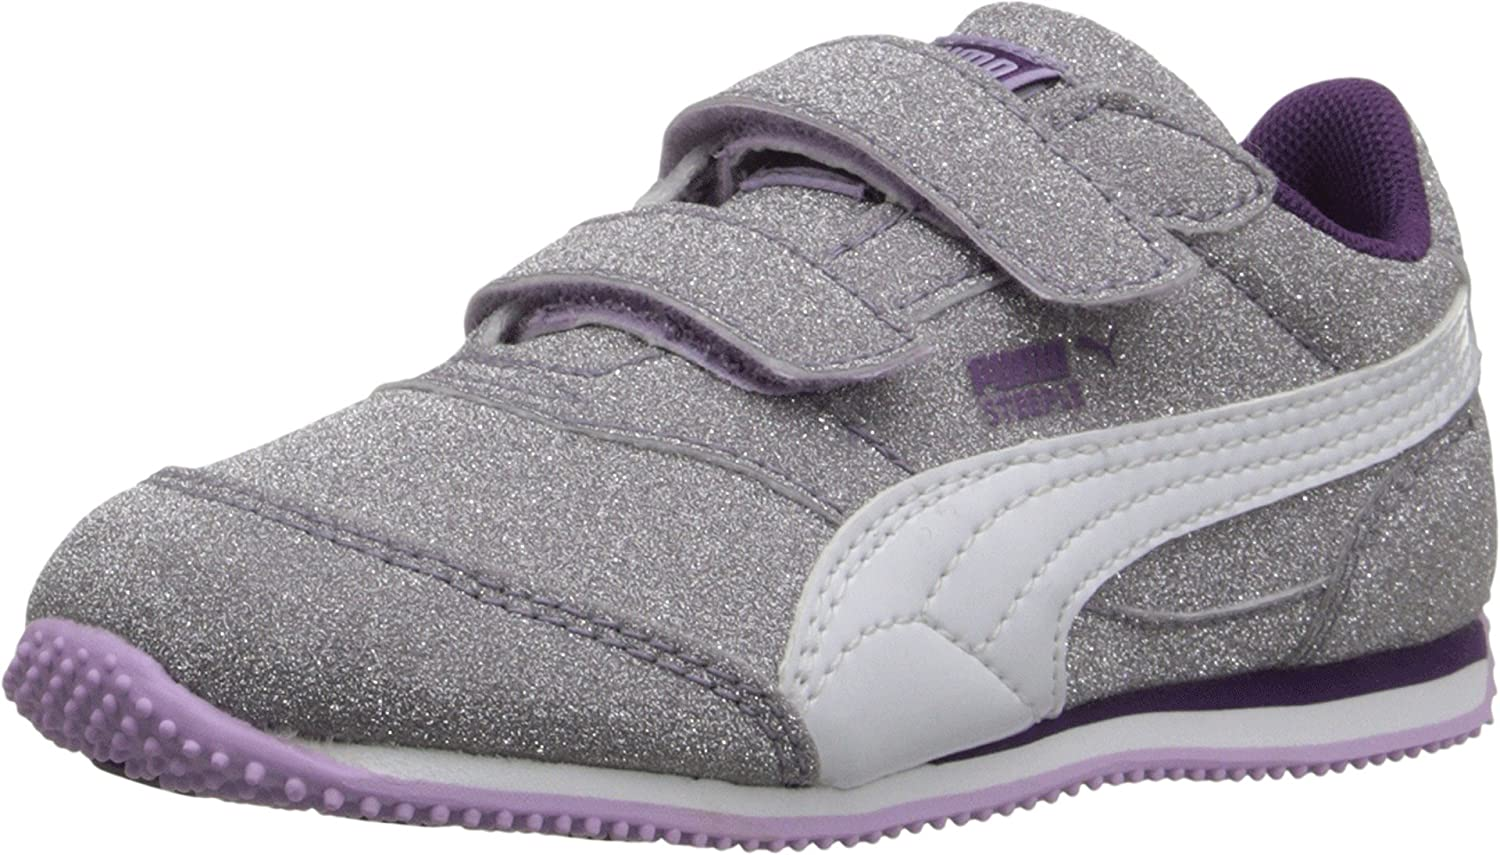 f3a716407547 Puma Steeple Glitz AOG V Kids Sparkle Sneaker (3.5 Big Kid M, Orchid  Bloom/White/Imperial Purple): Amazon.co.uk: Shoes & Bags